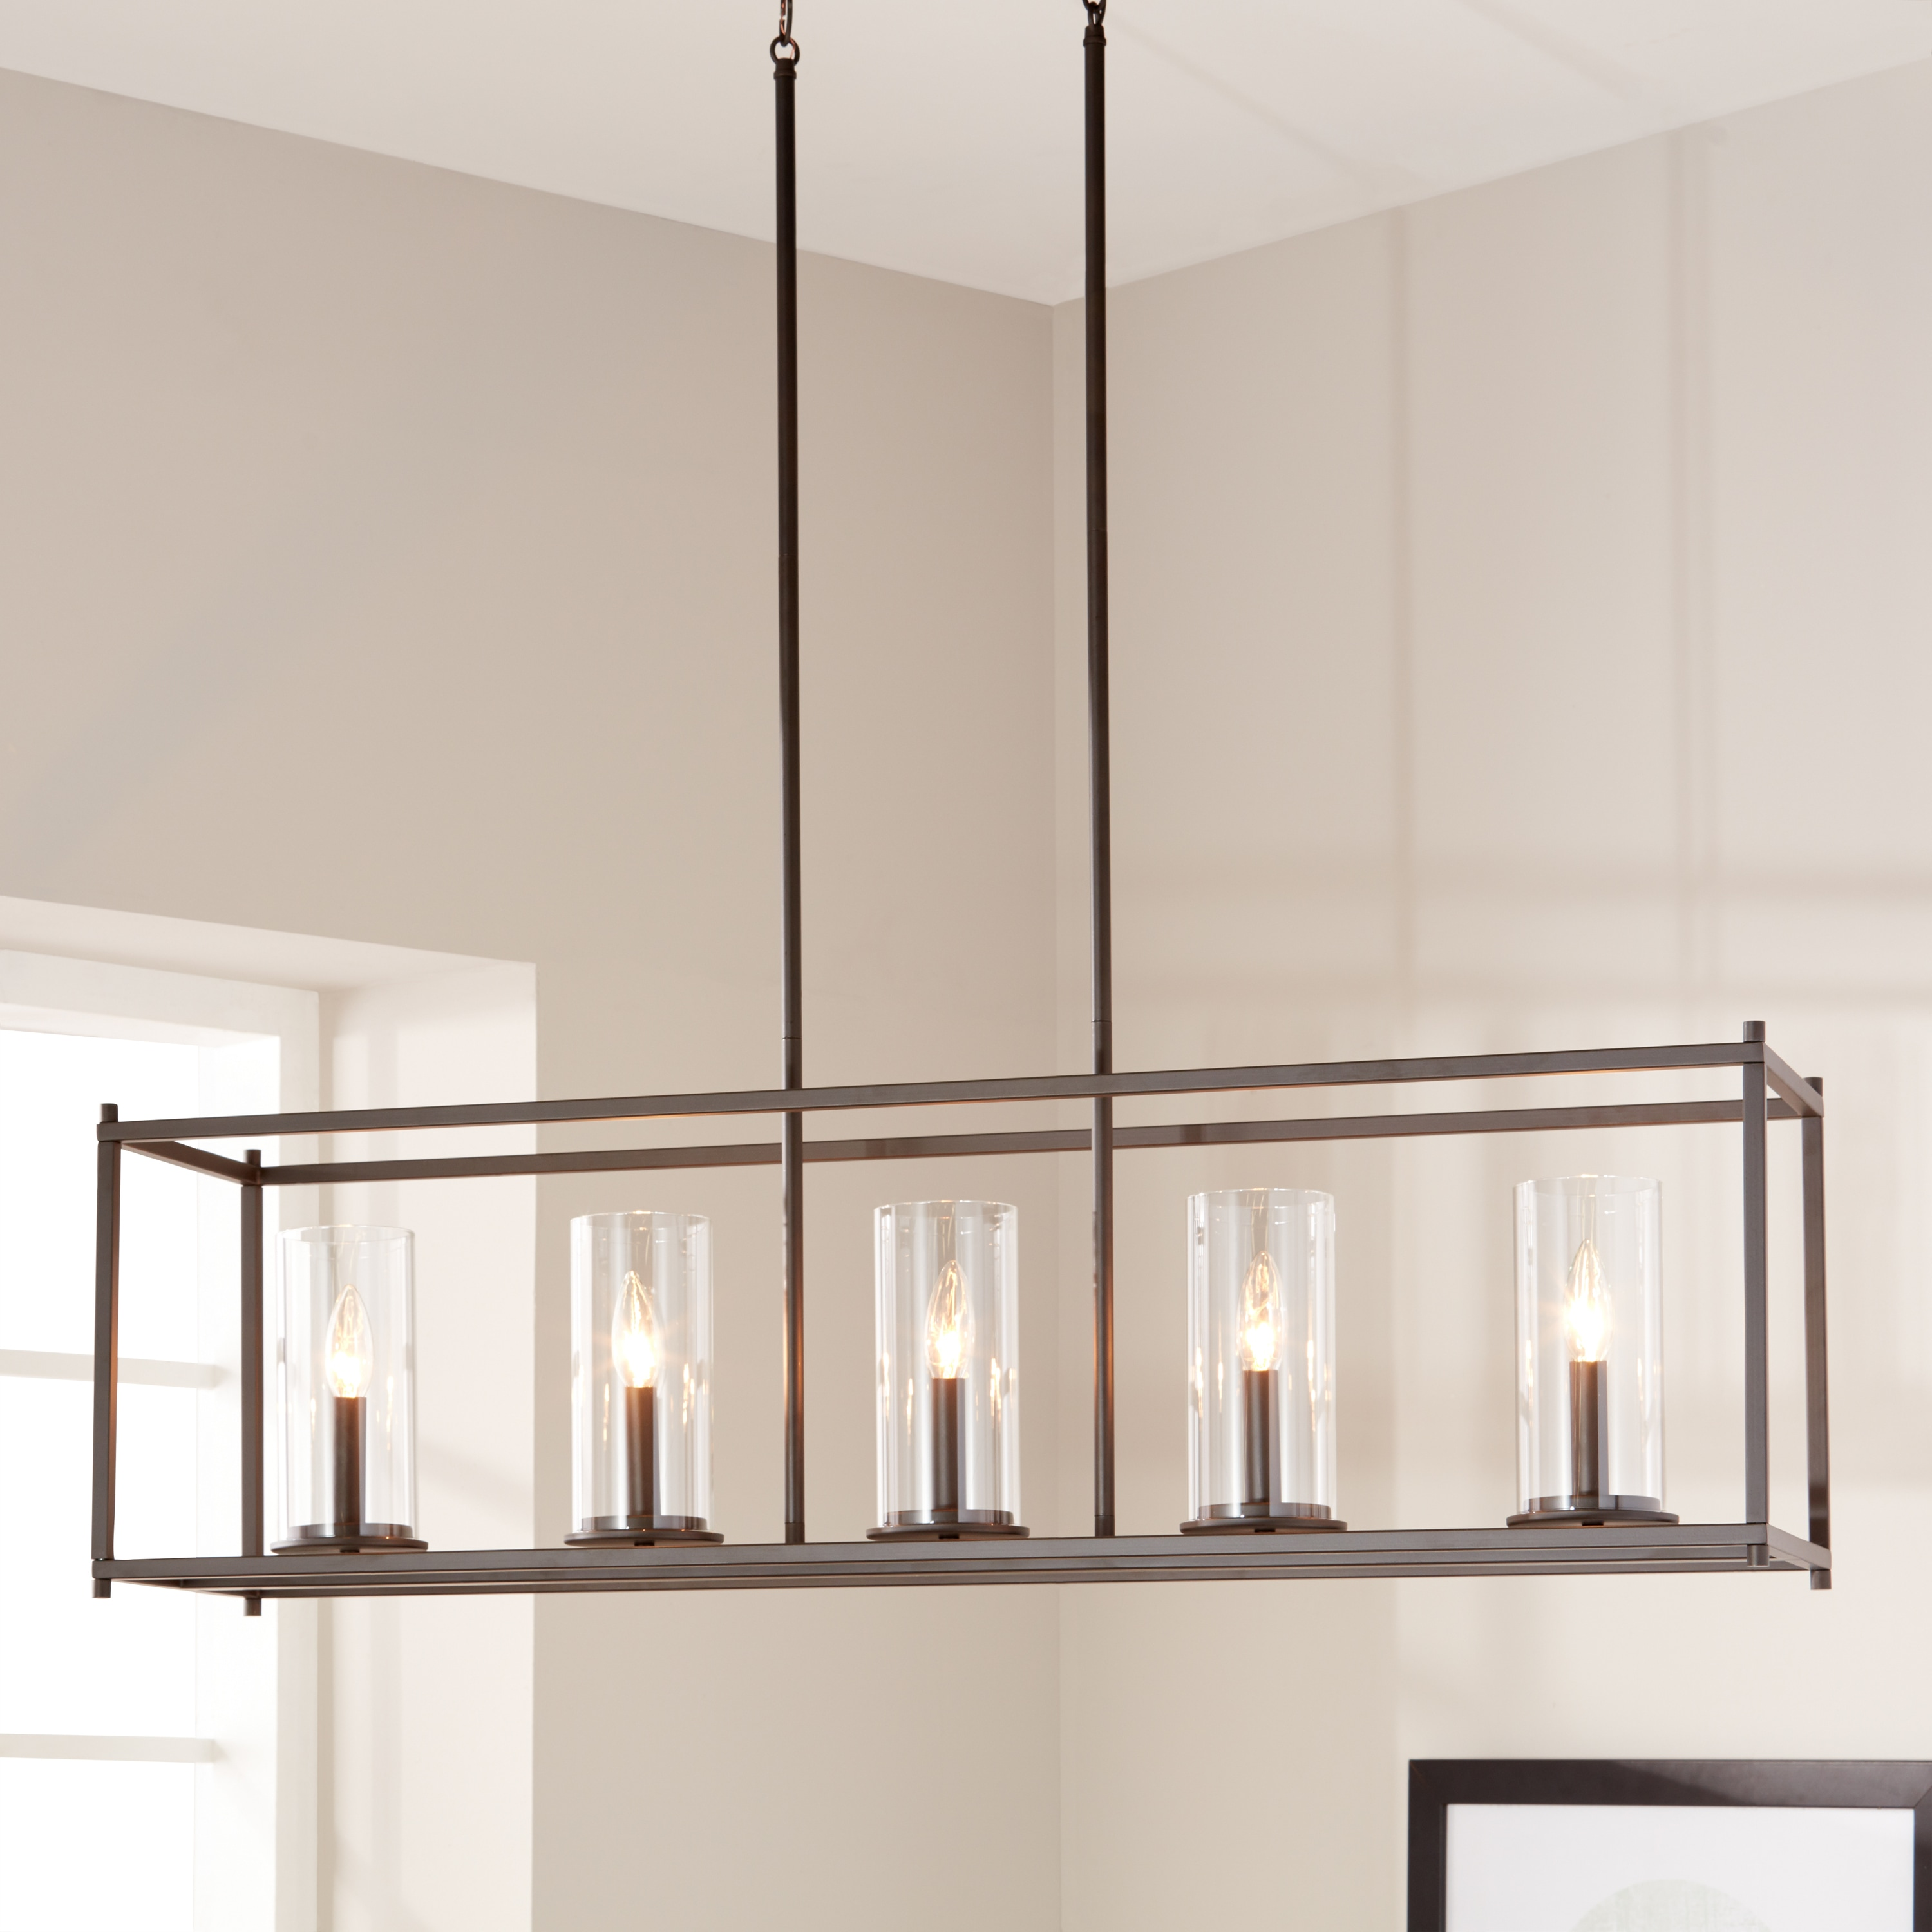 crosby collection large pendant light. Kichler Lighting Crosby Collection Olde Bronze Steel 5-light Linear Chandelier With Clear Glass Cylindrical Shades - Free Shipping Today Overstock Large Pendant Light